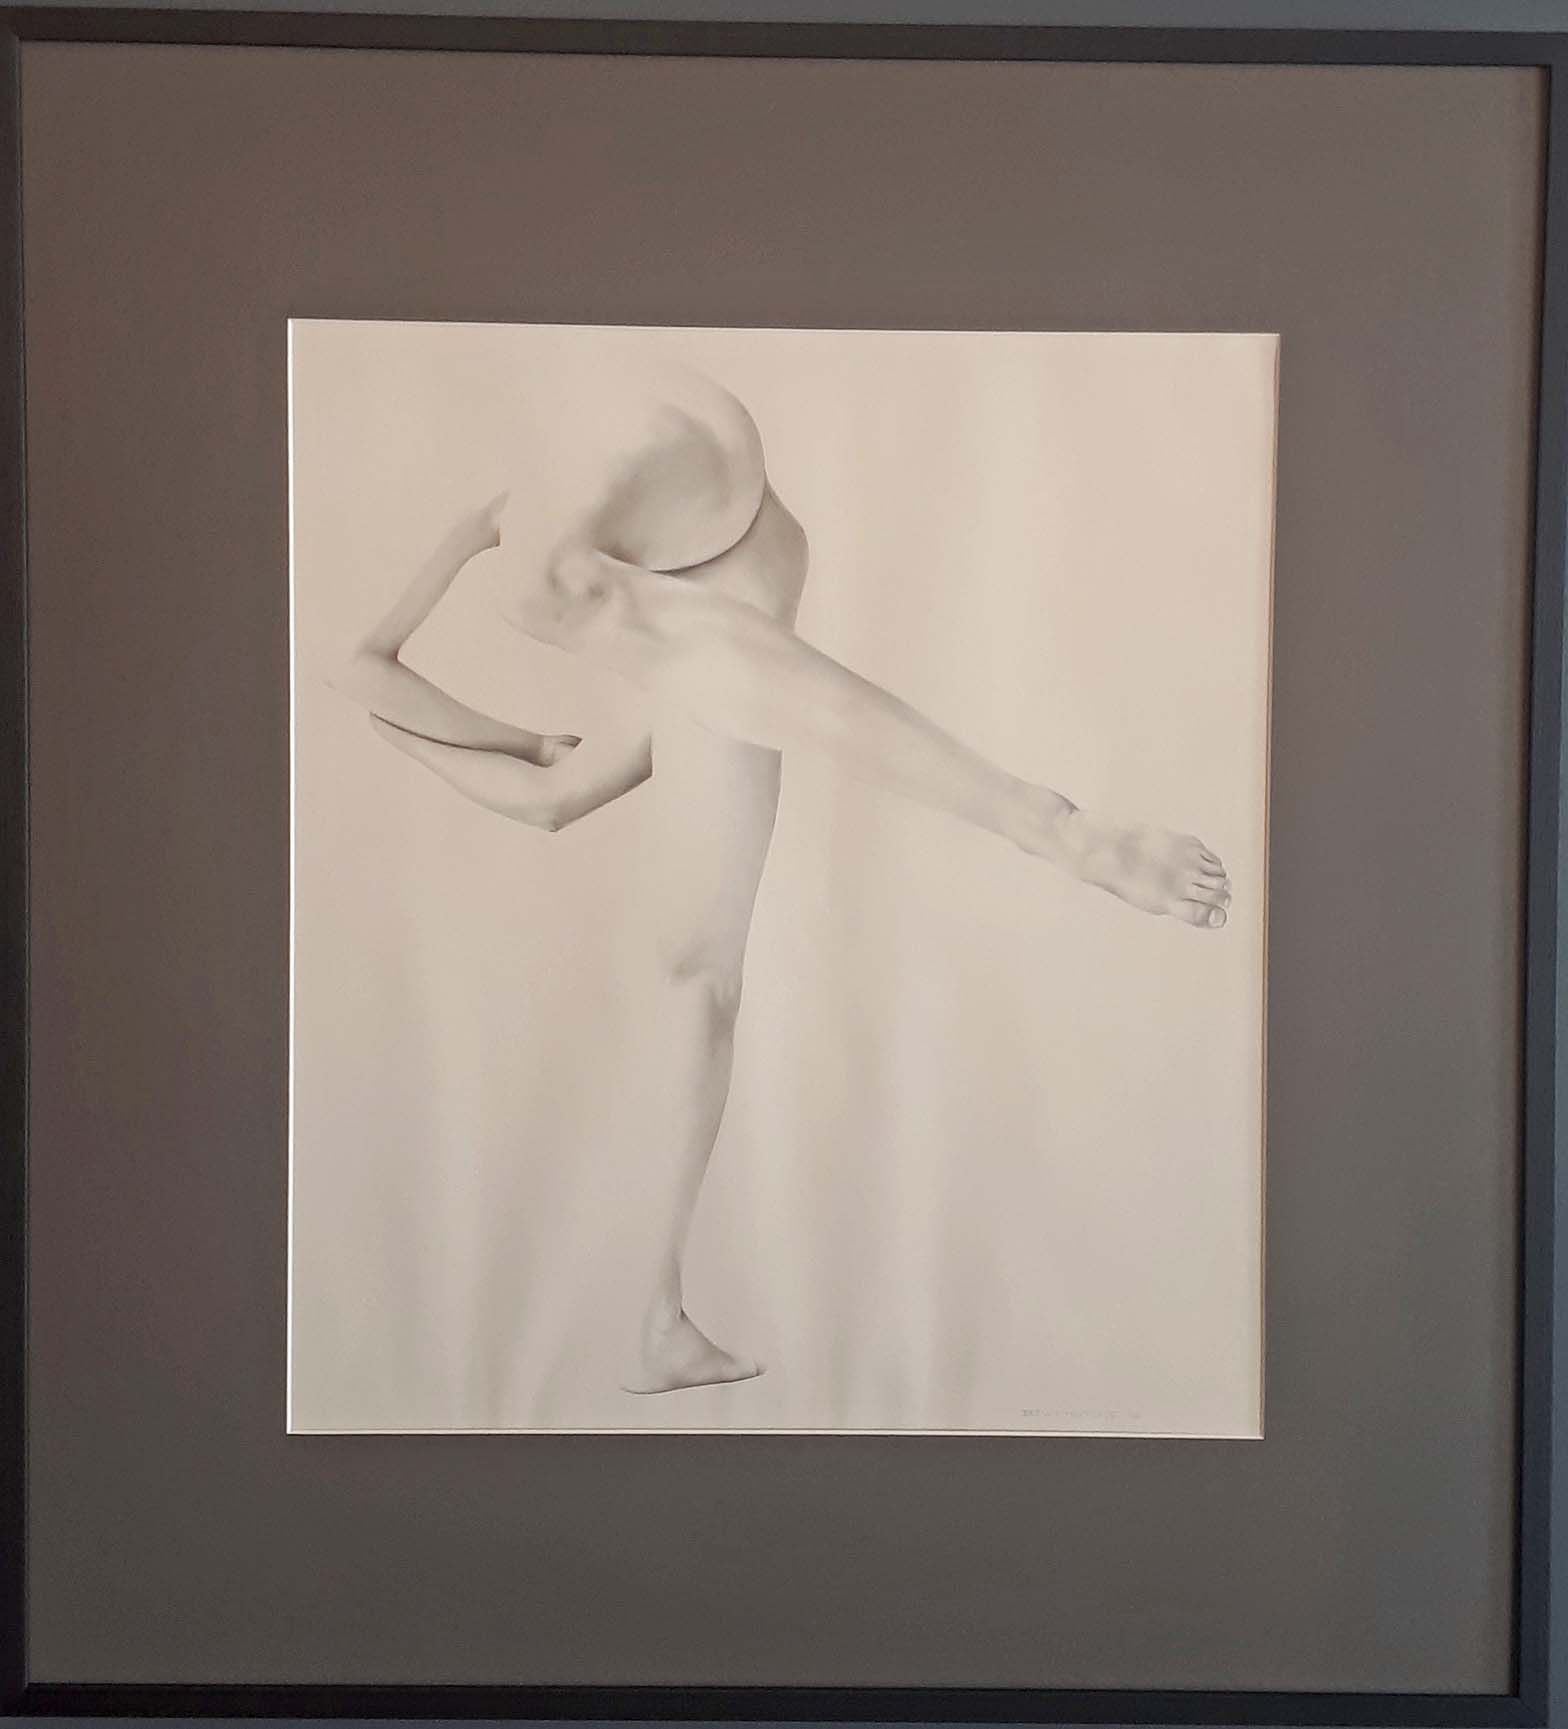 Drew McRitchie, B.C., Graphite on Paper, Size: 29 x 31, Price: 395.00